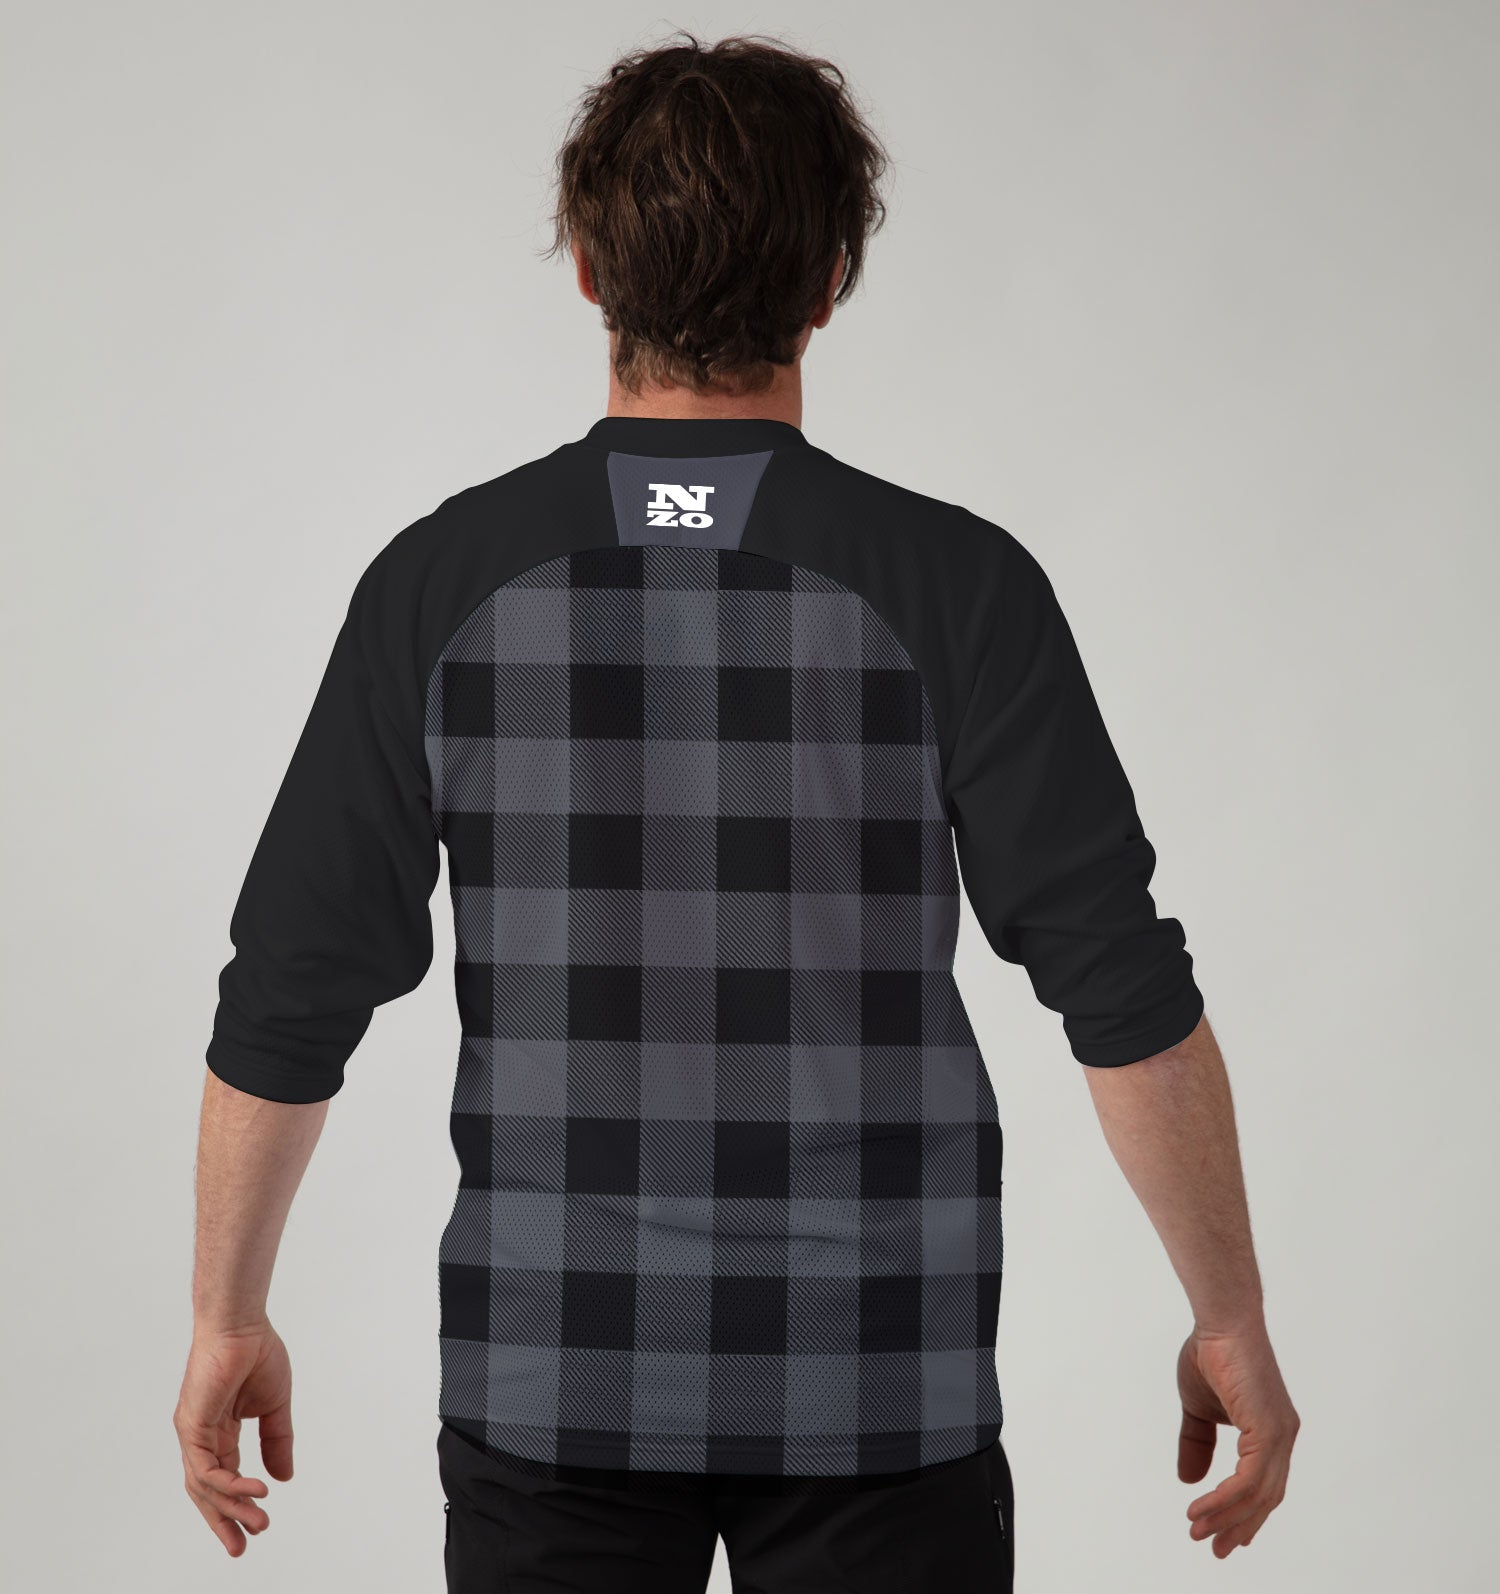 3/4 Sleeve MTB Top  - Nzo DESIGN 034-3